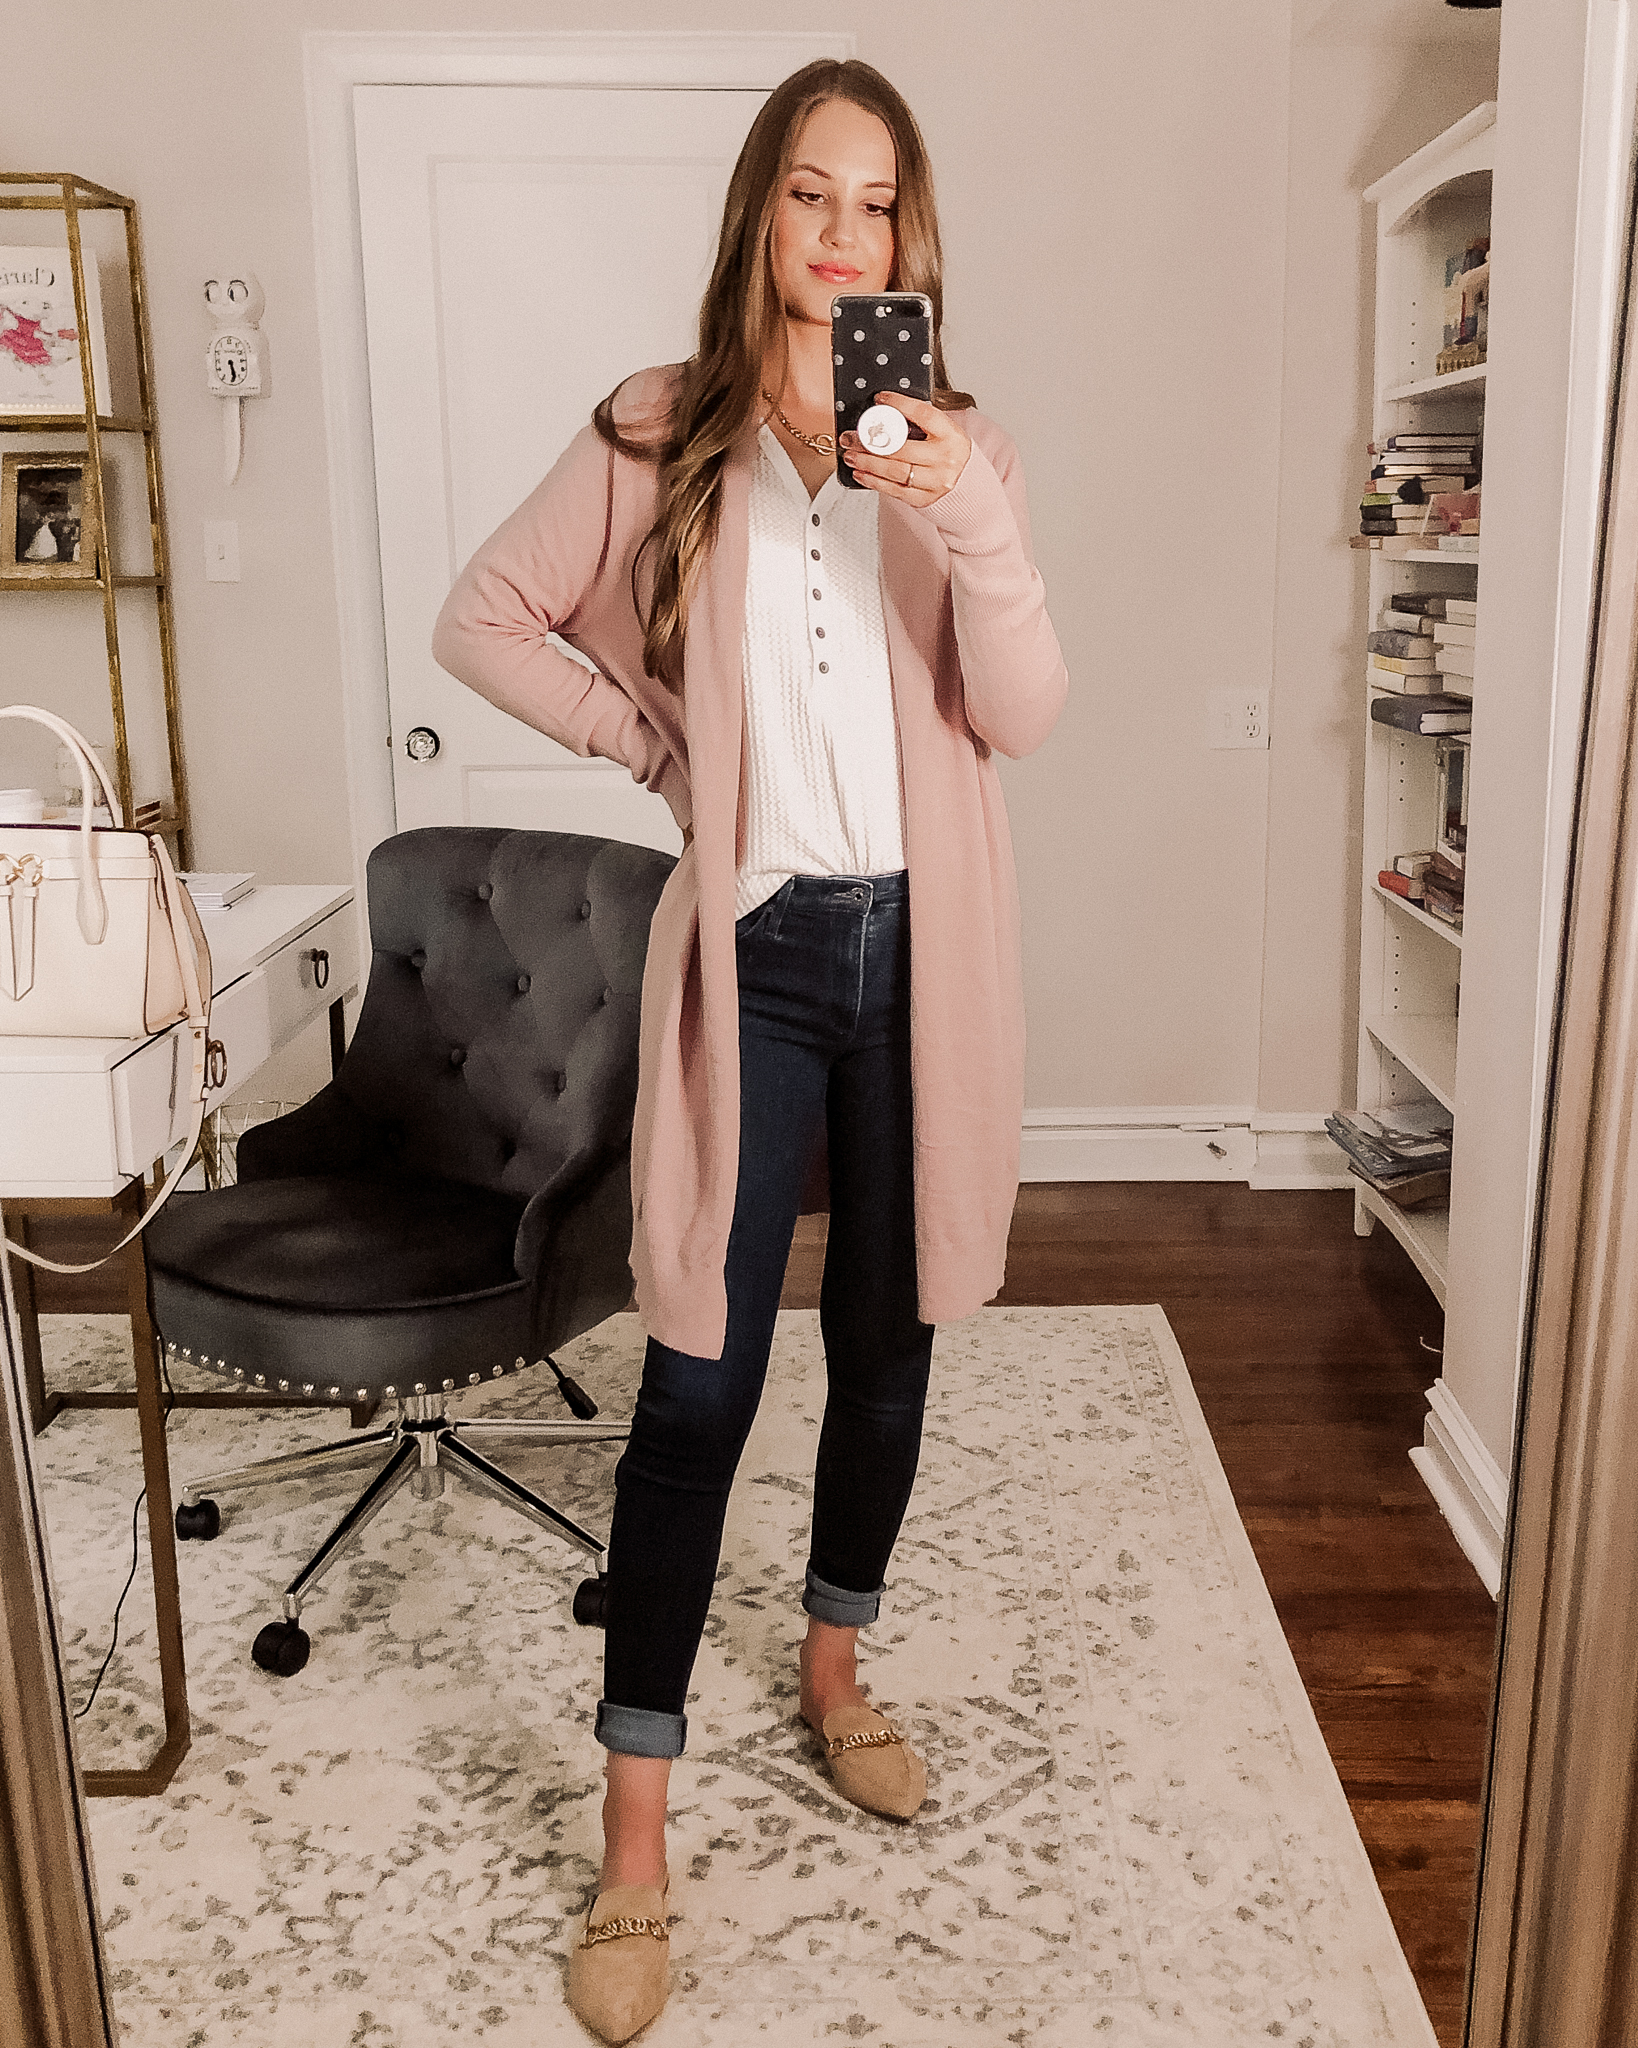 2020 Nordstrom Anniversary Sale Outfits